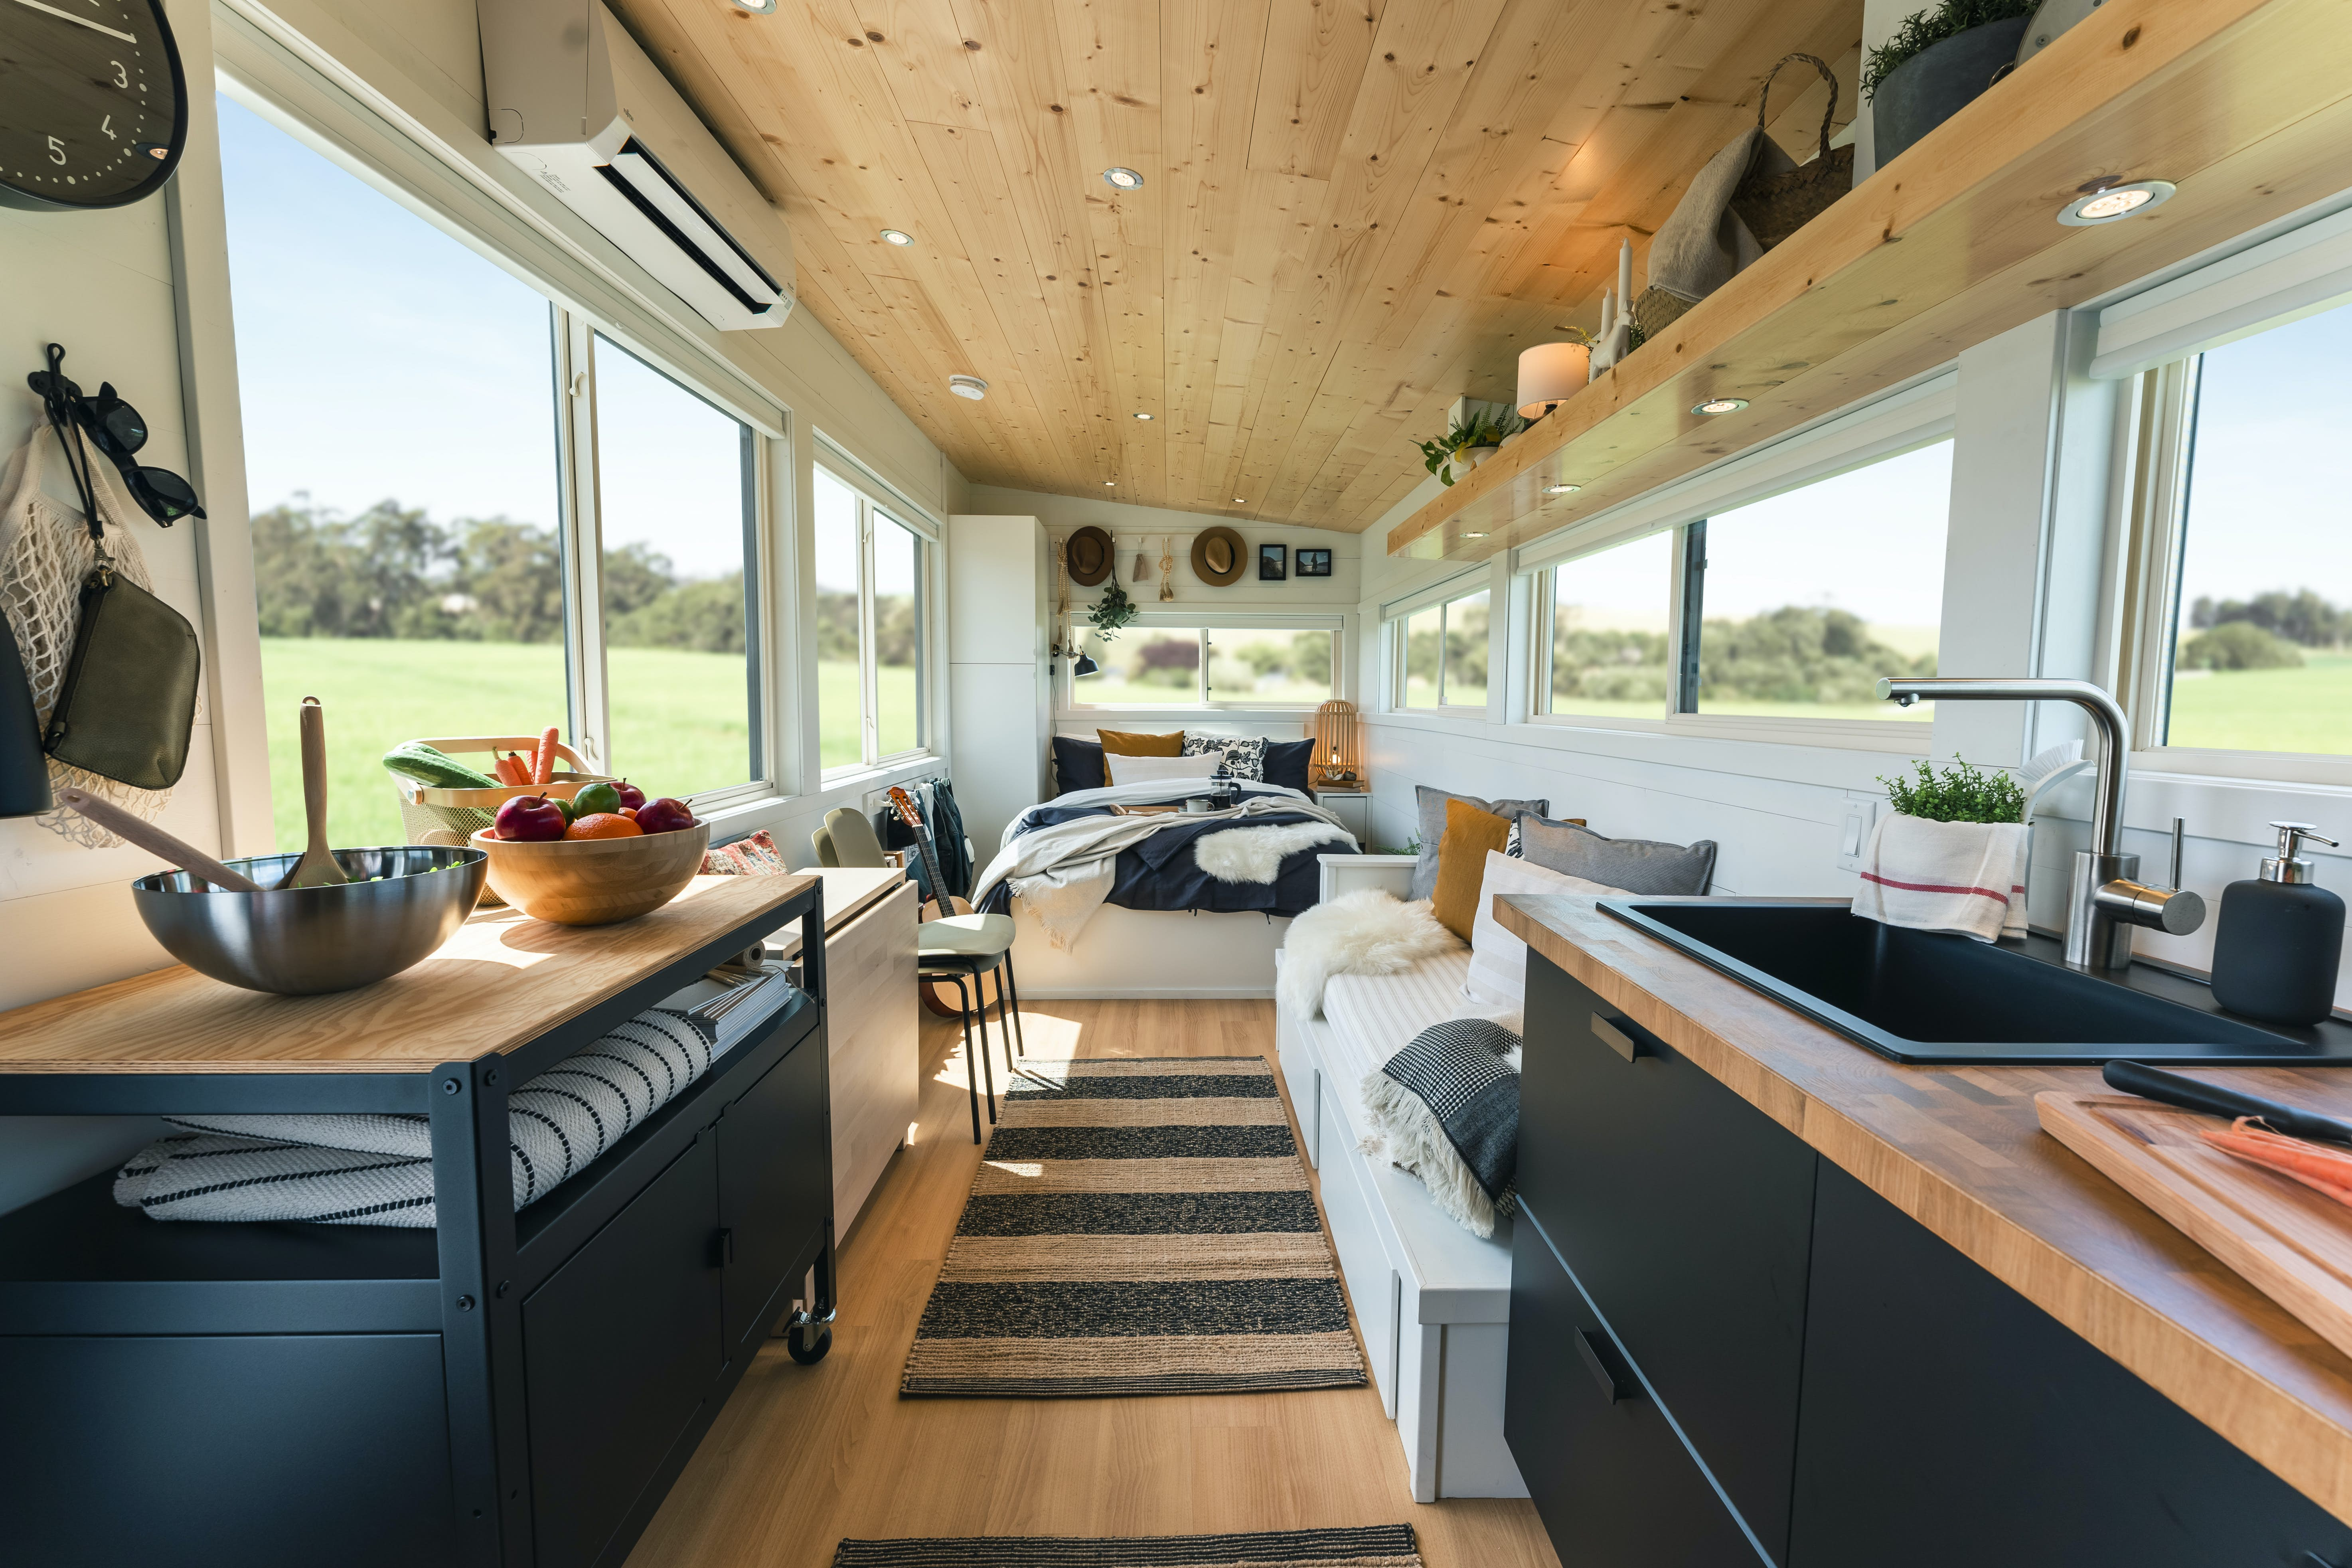 Take A Peek Inside Ikea S First Sustainable Tiny Home Lonely Planet